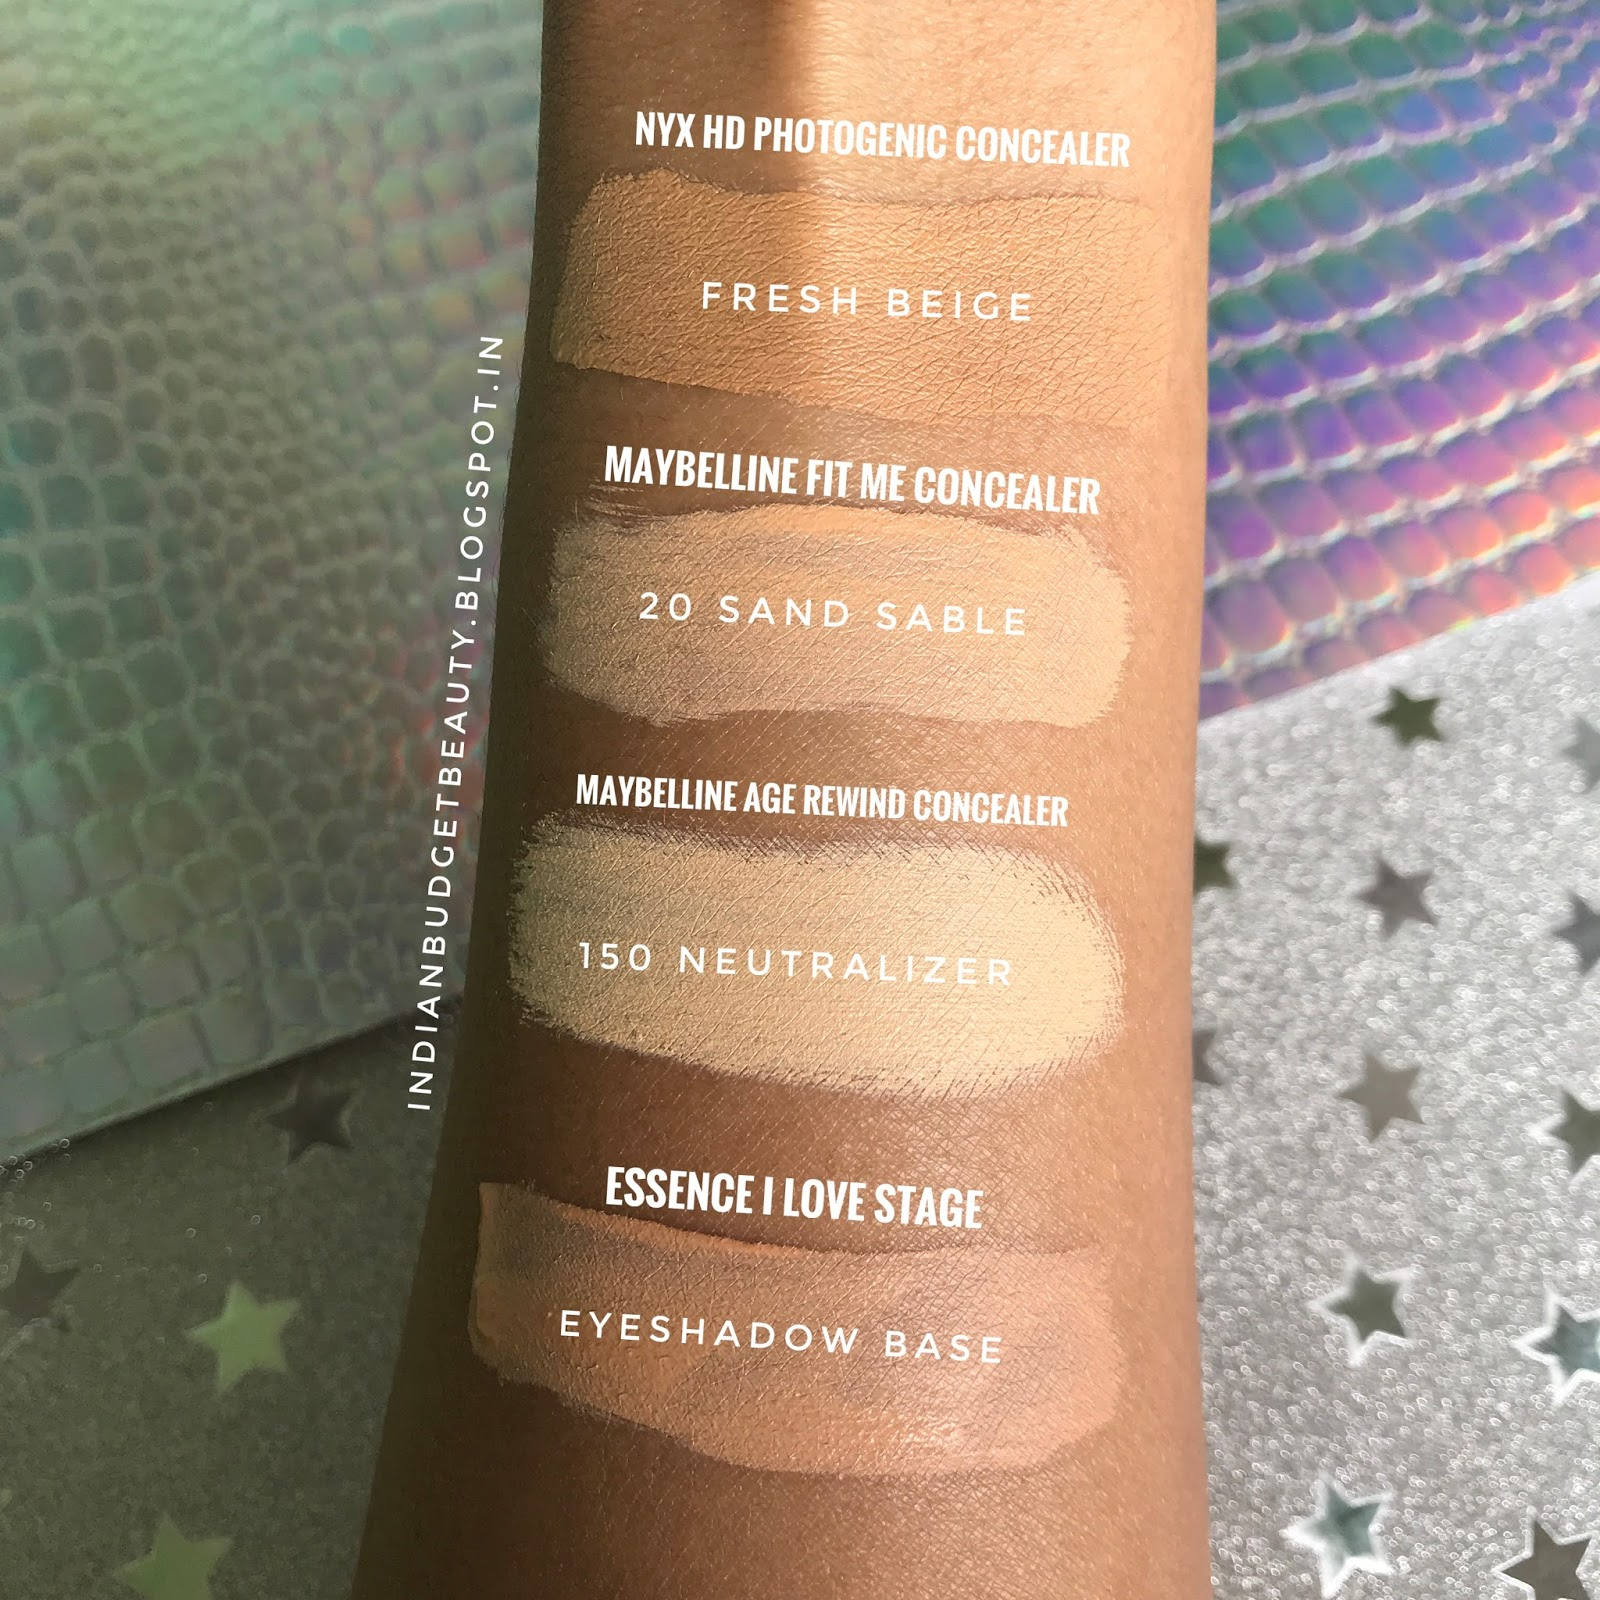 Nyx hd studio photogenic concealer wand fresh beige cw 06 3 review swatches comparison - Nyx concealer wand medium ...